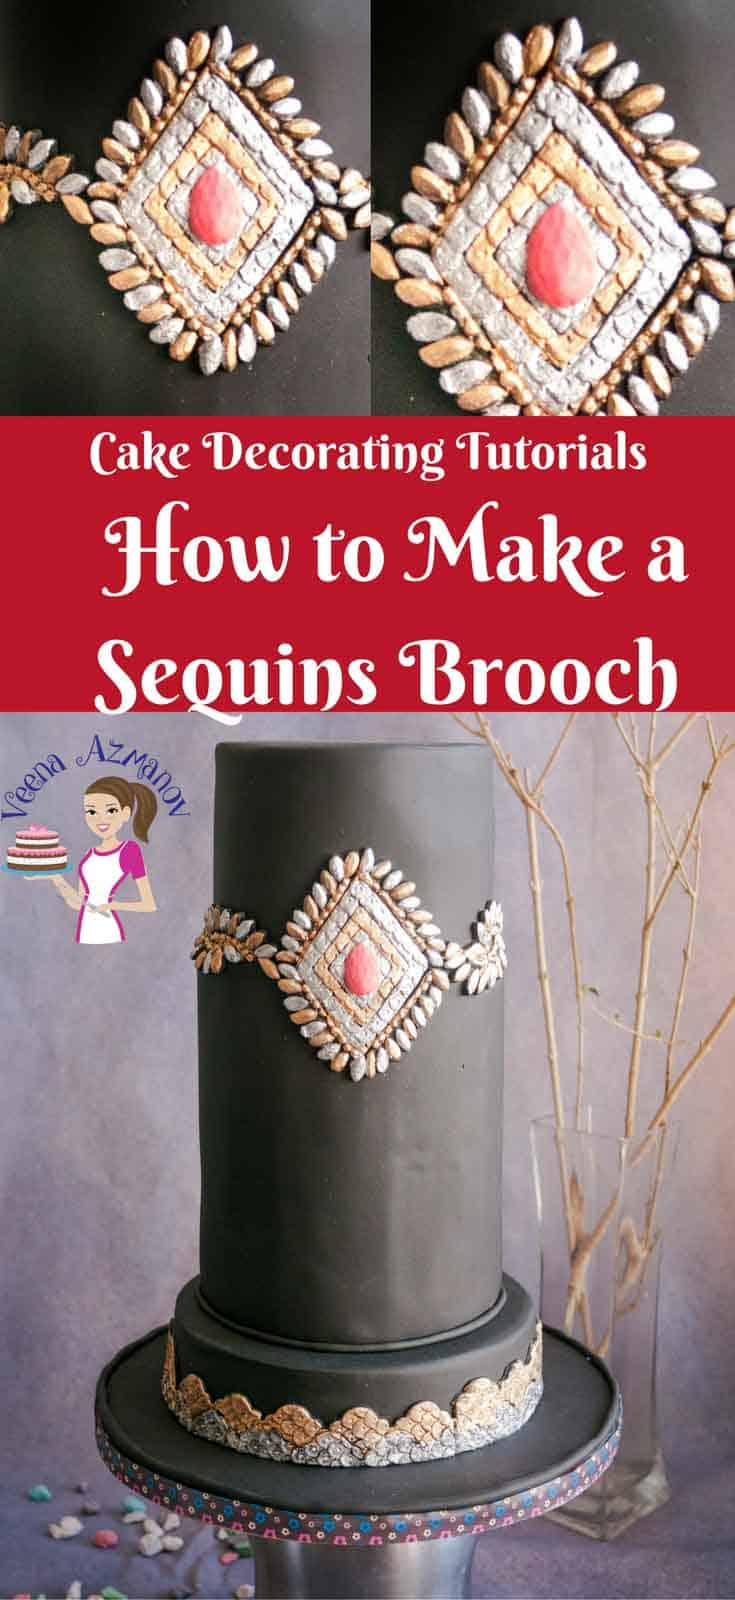 Sequins as a cake trend that's making a huge statement in fashion cakes. It give a dramatic look. Make it classy as this or as rustic combined it with textures and frills. This sequins brooch is bound to look impressing on any cake designed for a lady.